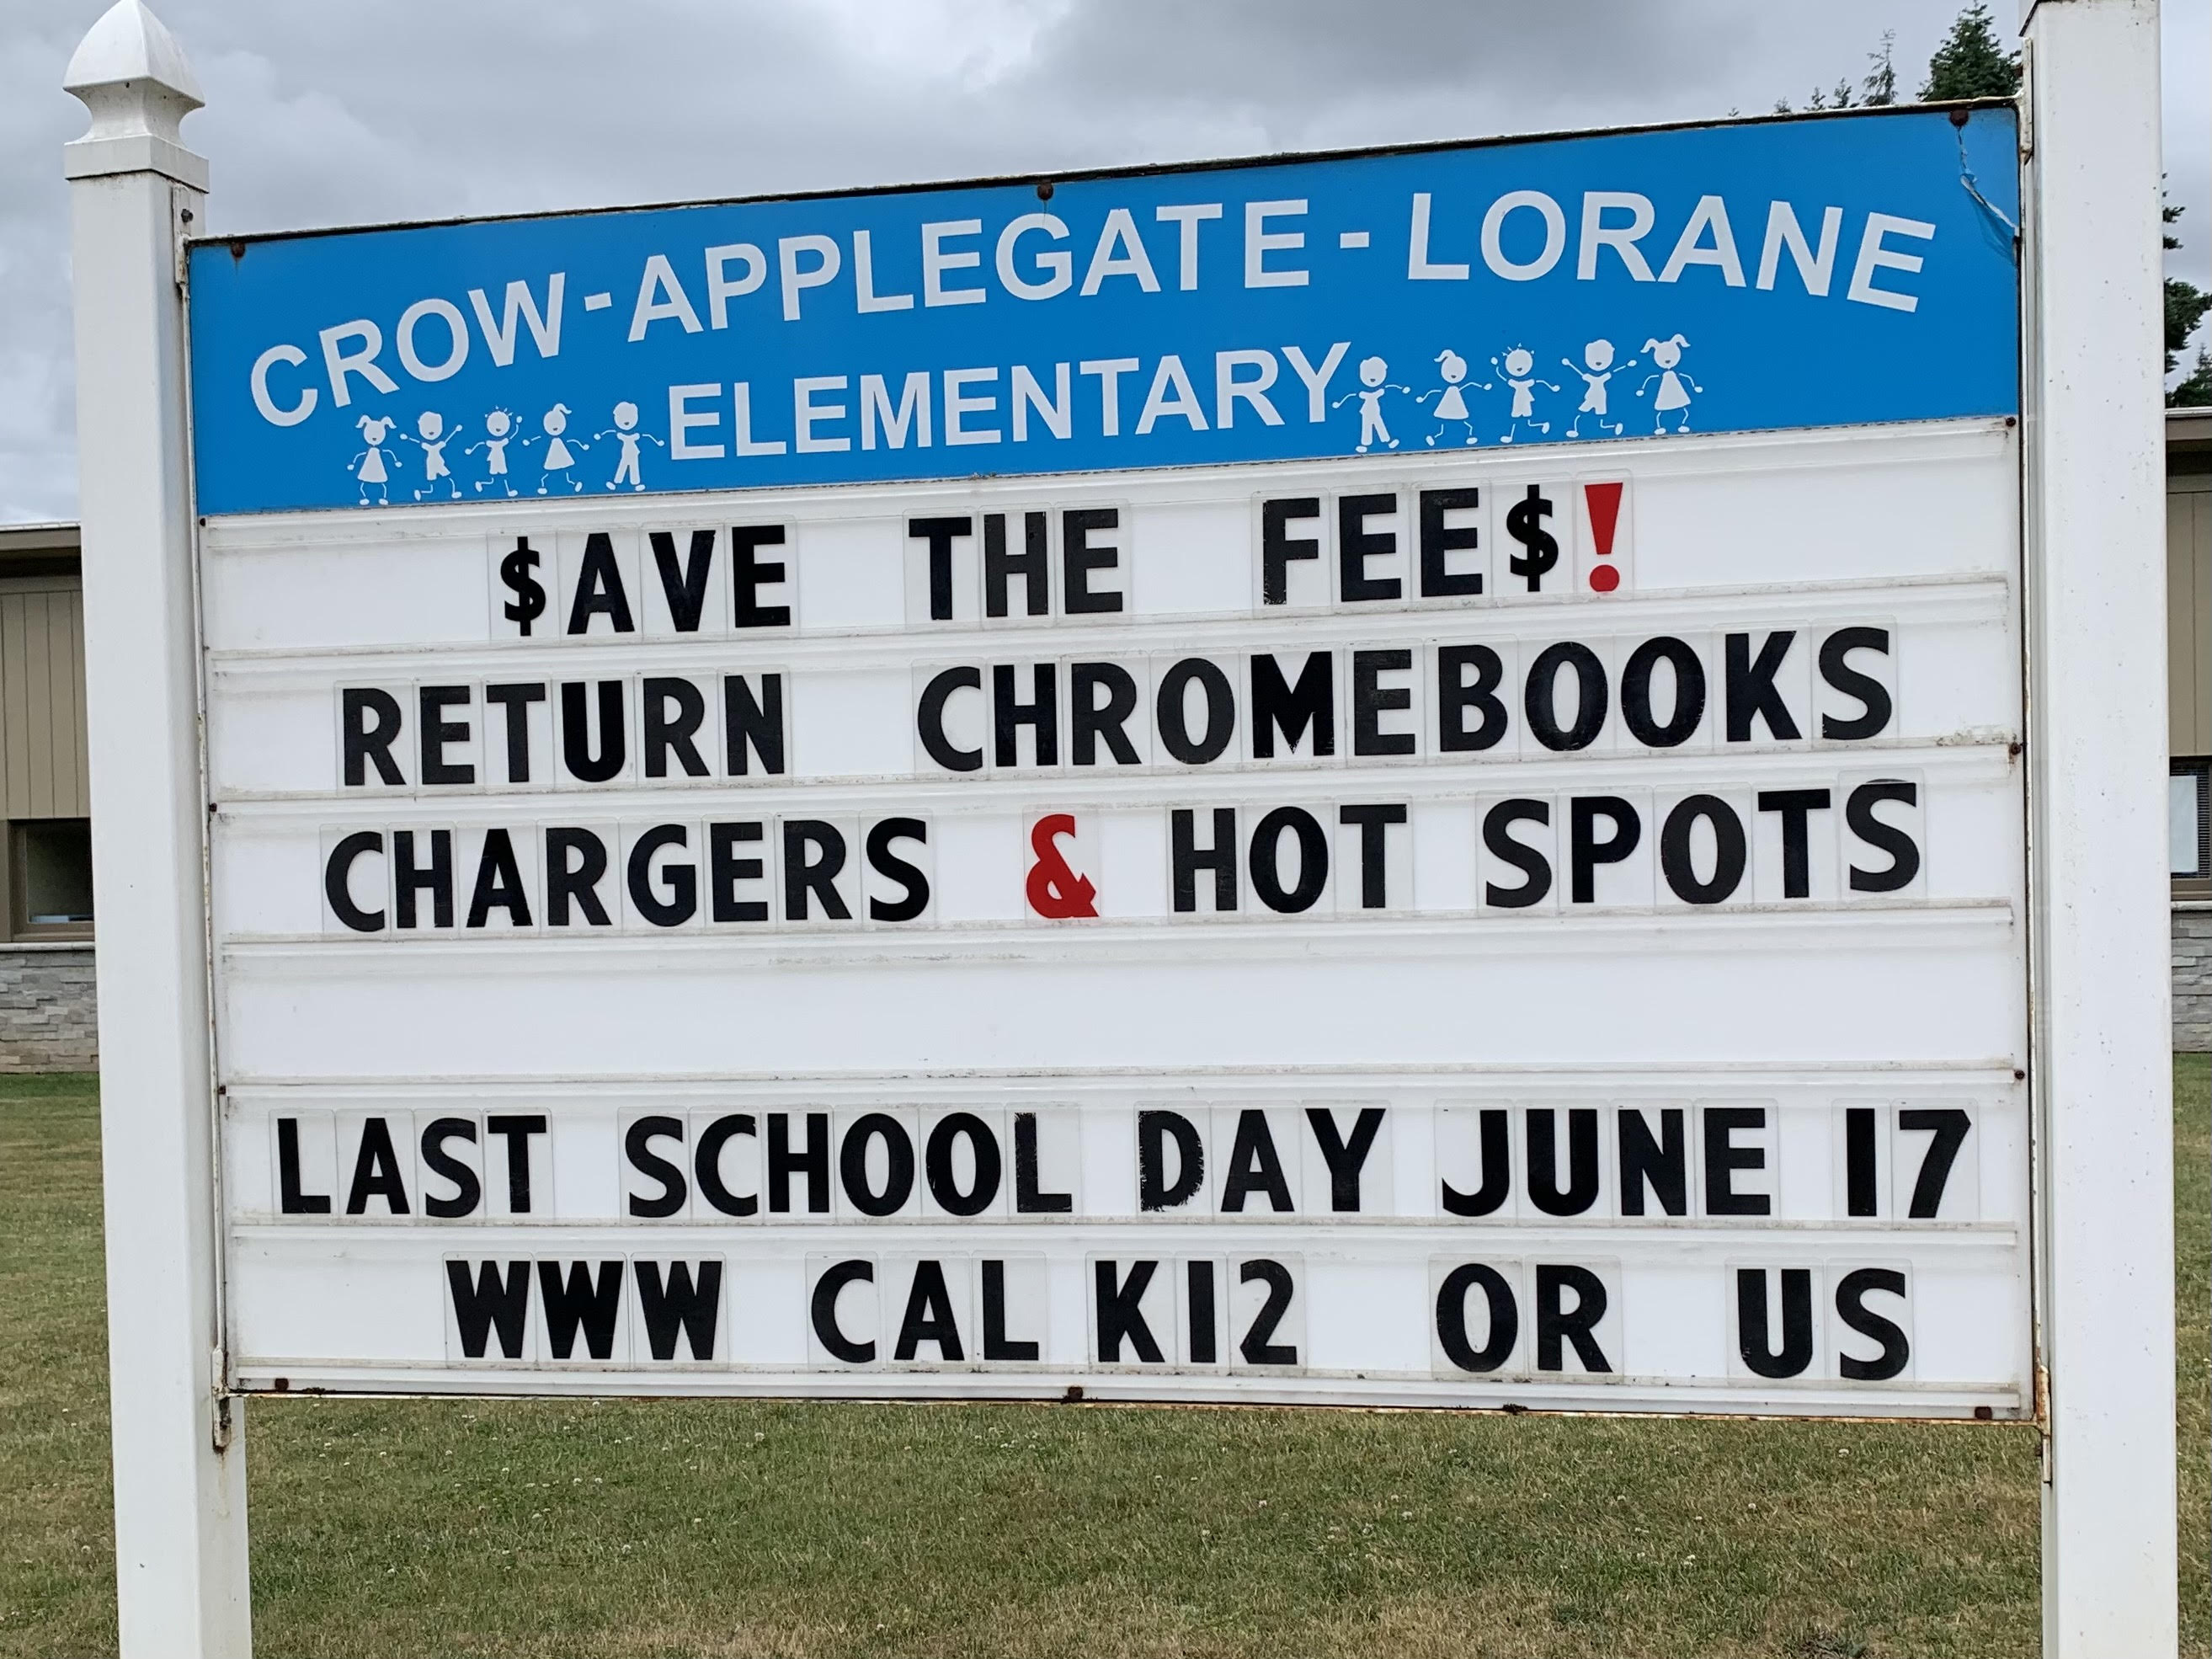 $ave the fee$! Turn in your borrowed hot spots, Chromebooks, and chargers.